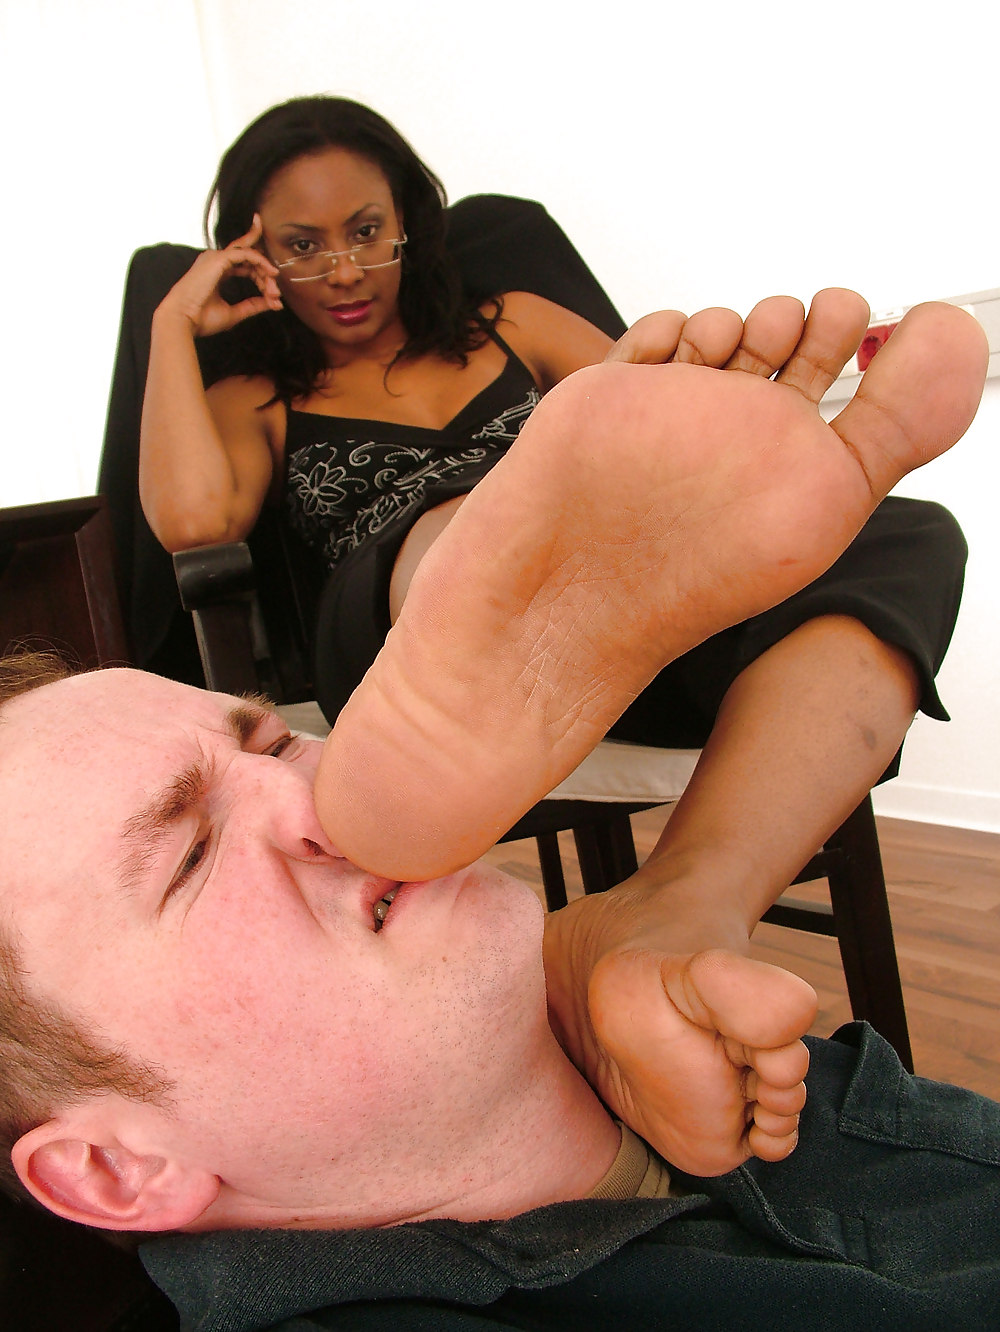 Foot fetish porn pics, sexy feet sex galleries